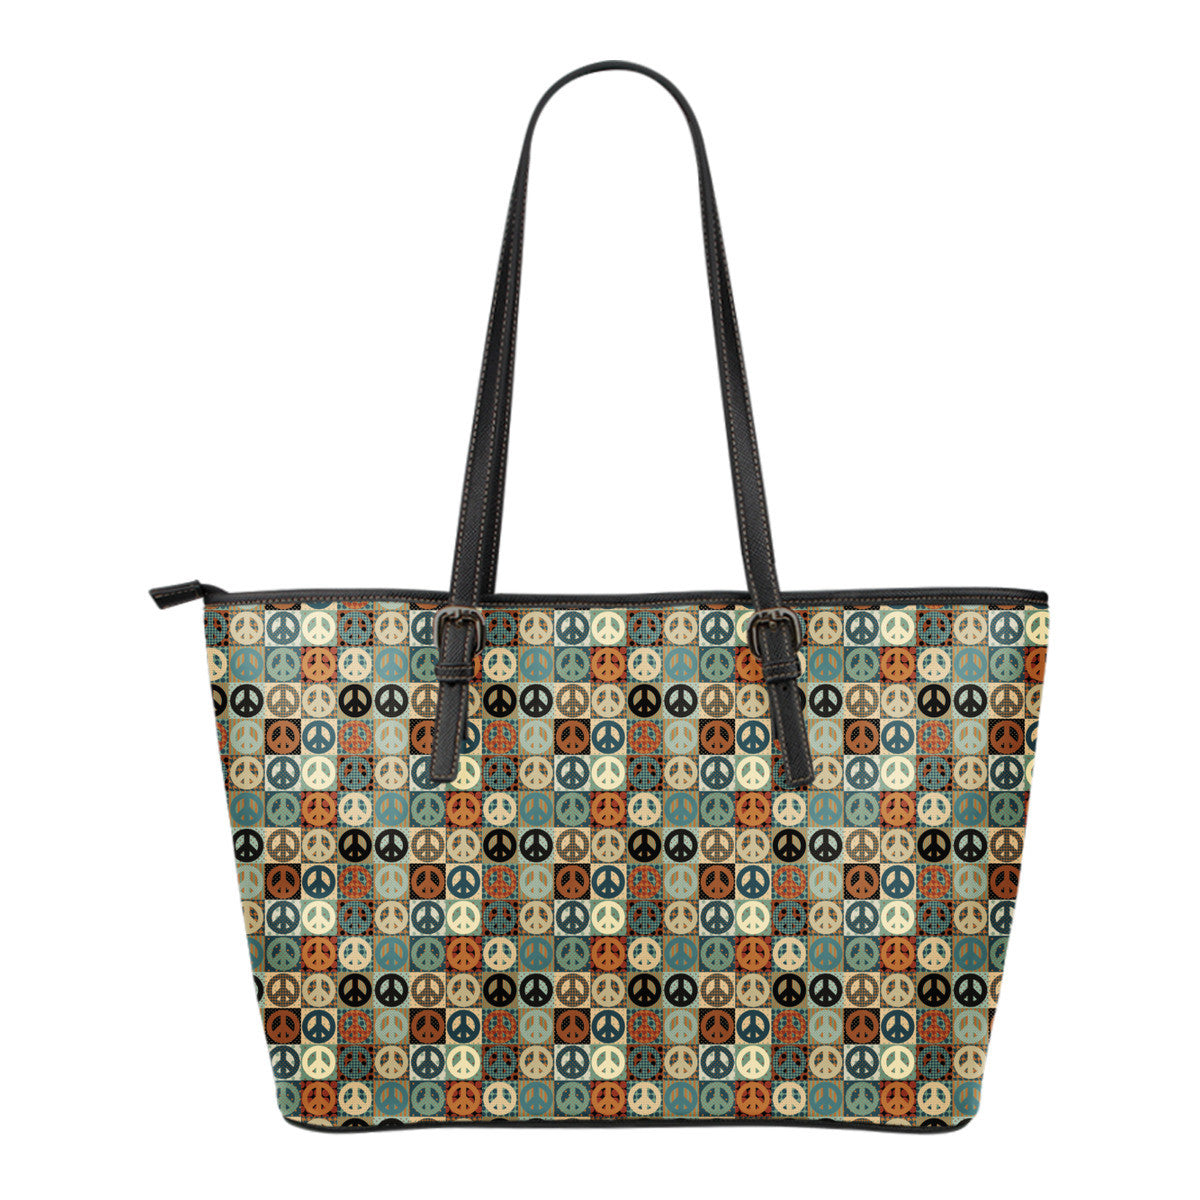 Peace Small Leather Tote Bag